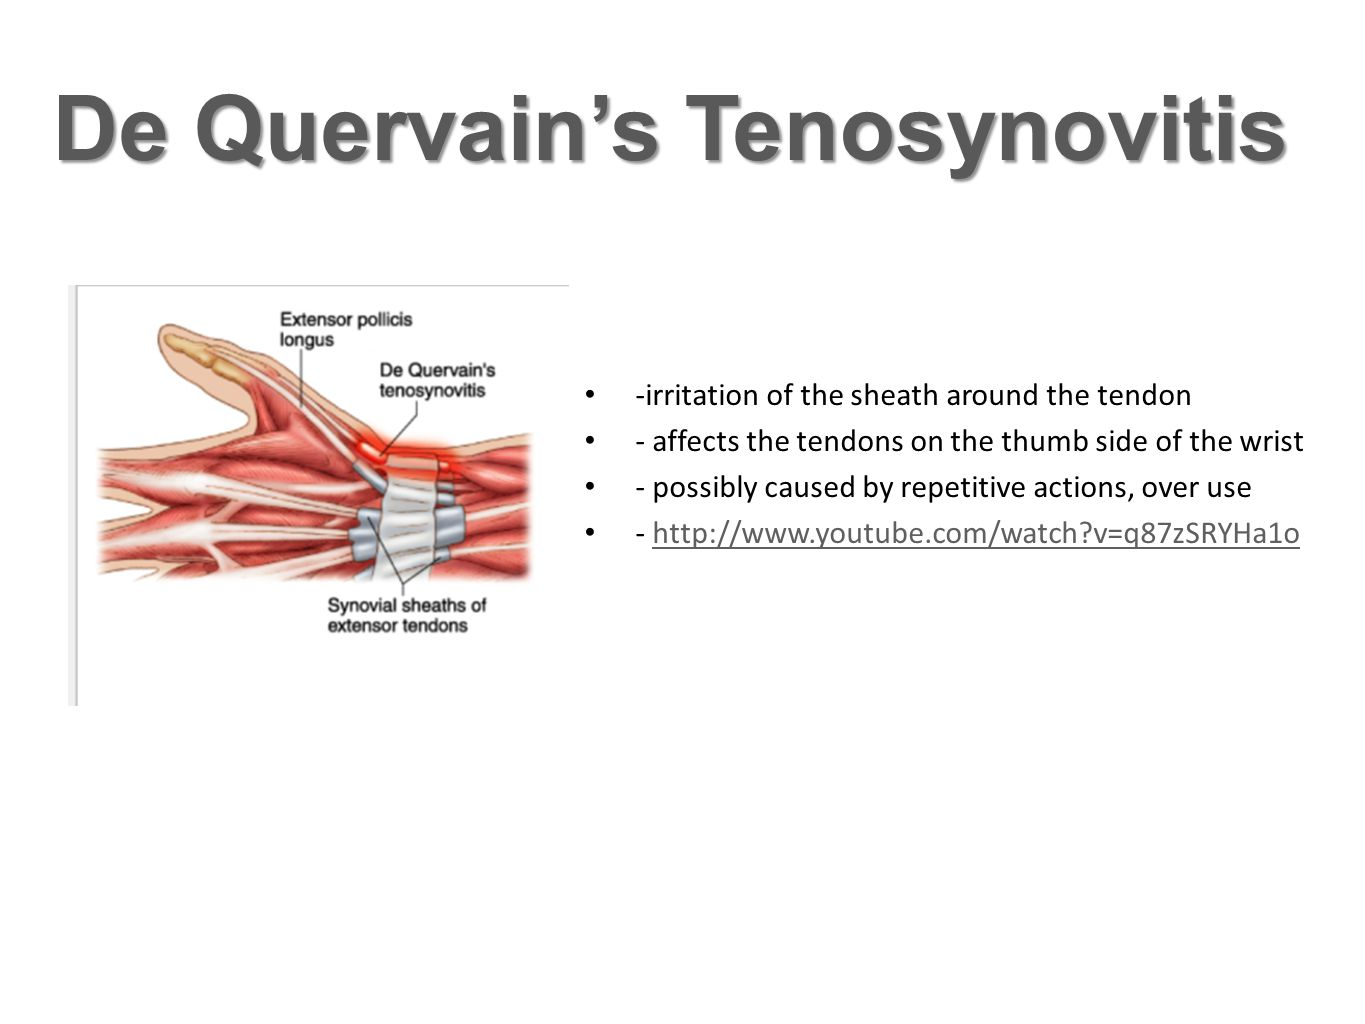 Clinical Concerns Carpal tunnelGanglion cyst -The transverse carpal ligament in the wrist puts pressure on the medial nerve -- possible cause: overuse, hormonal -http://www.youtube.com/watch?v=SGyKQc hSEJ4http://www.youtube.com/watch?v=SGyKQc hSEJ4 -Is a fluid filled cyst that develops out of a joint.